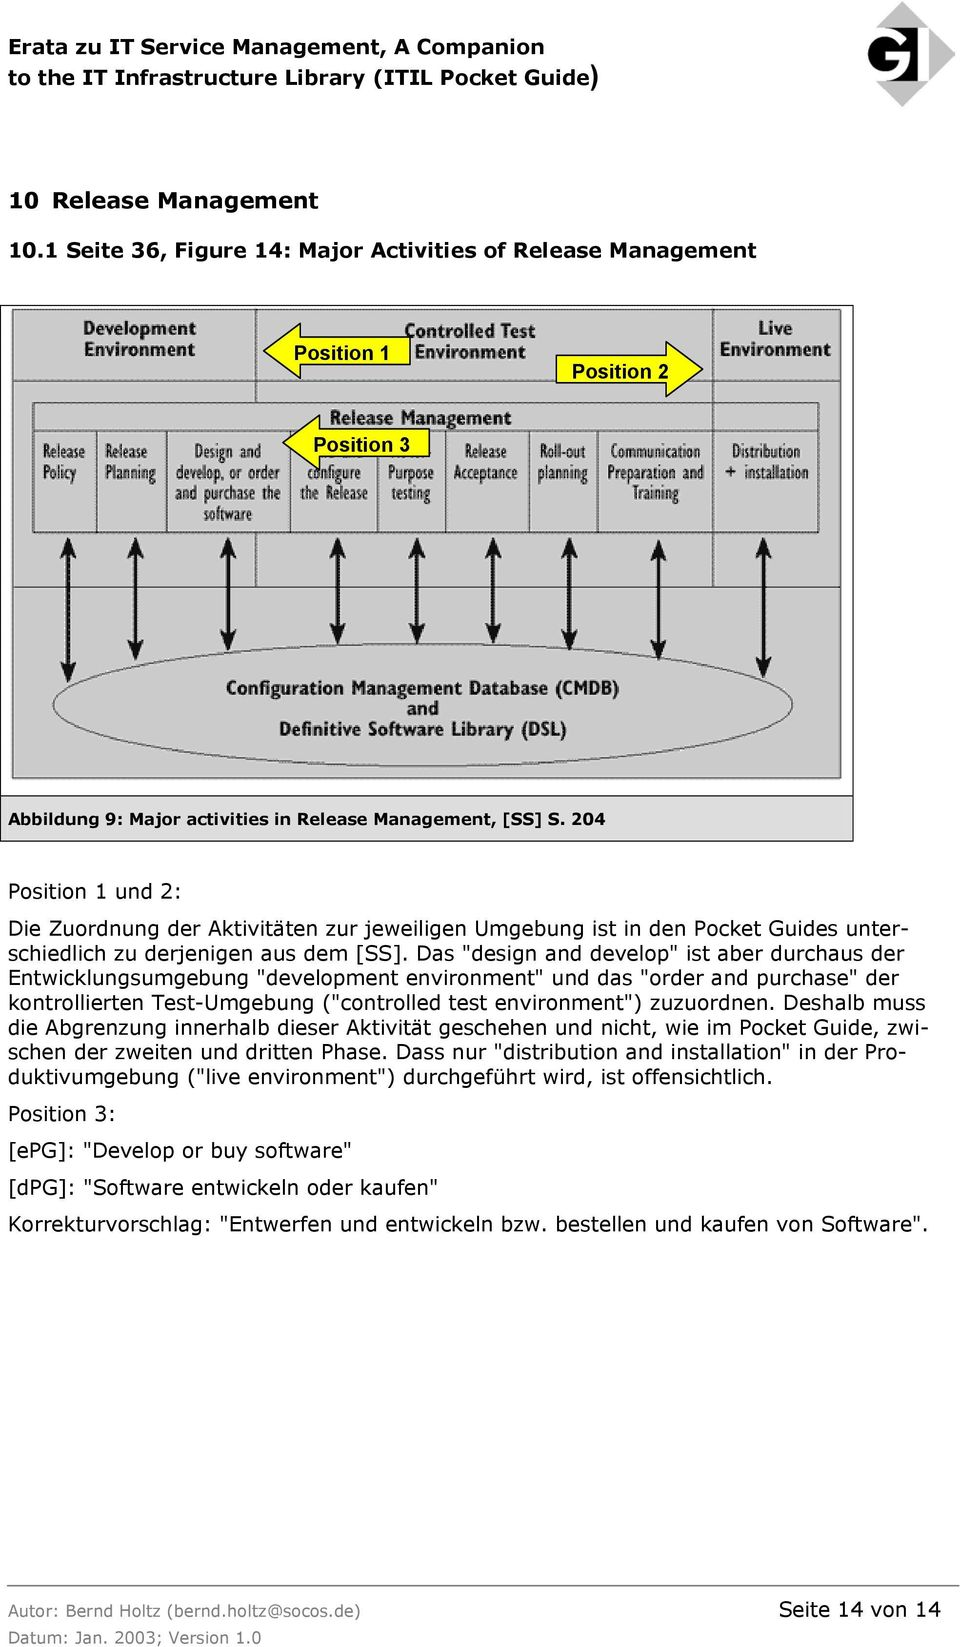 "Das ""design and develop"" ist aber durchaus der Entwicklungsumgebung ""development environment"" und das ""order and purchase"" der kontrollierten Test-Umgebung (""controlled test environment"") zuzuordnen."